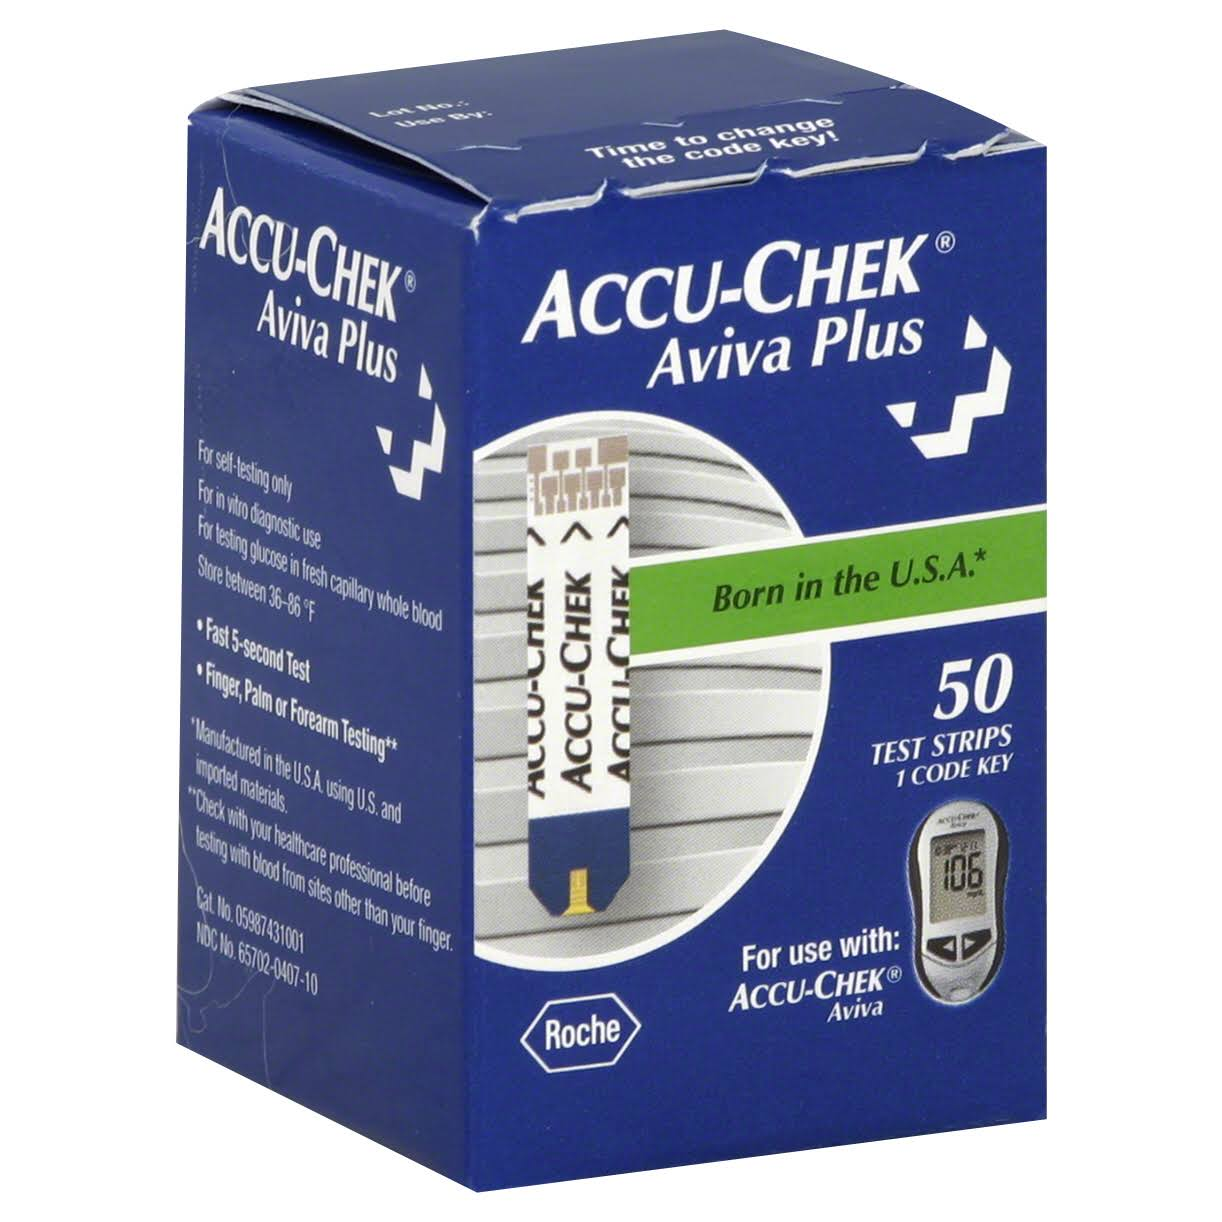 Accu-Chek Aviva Plus Blood Glucose Test Strips - 50 Count